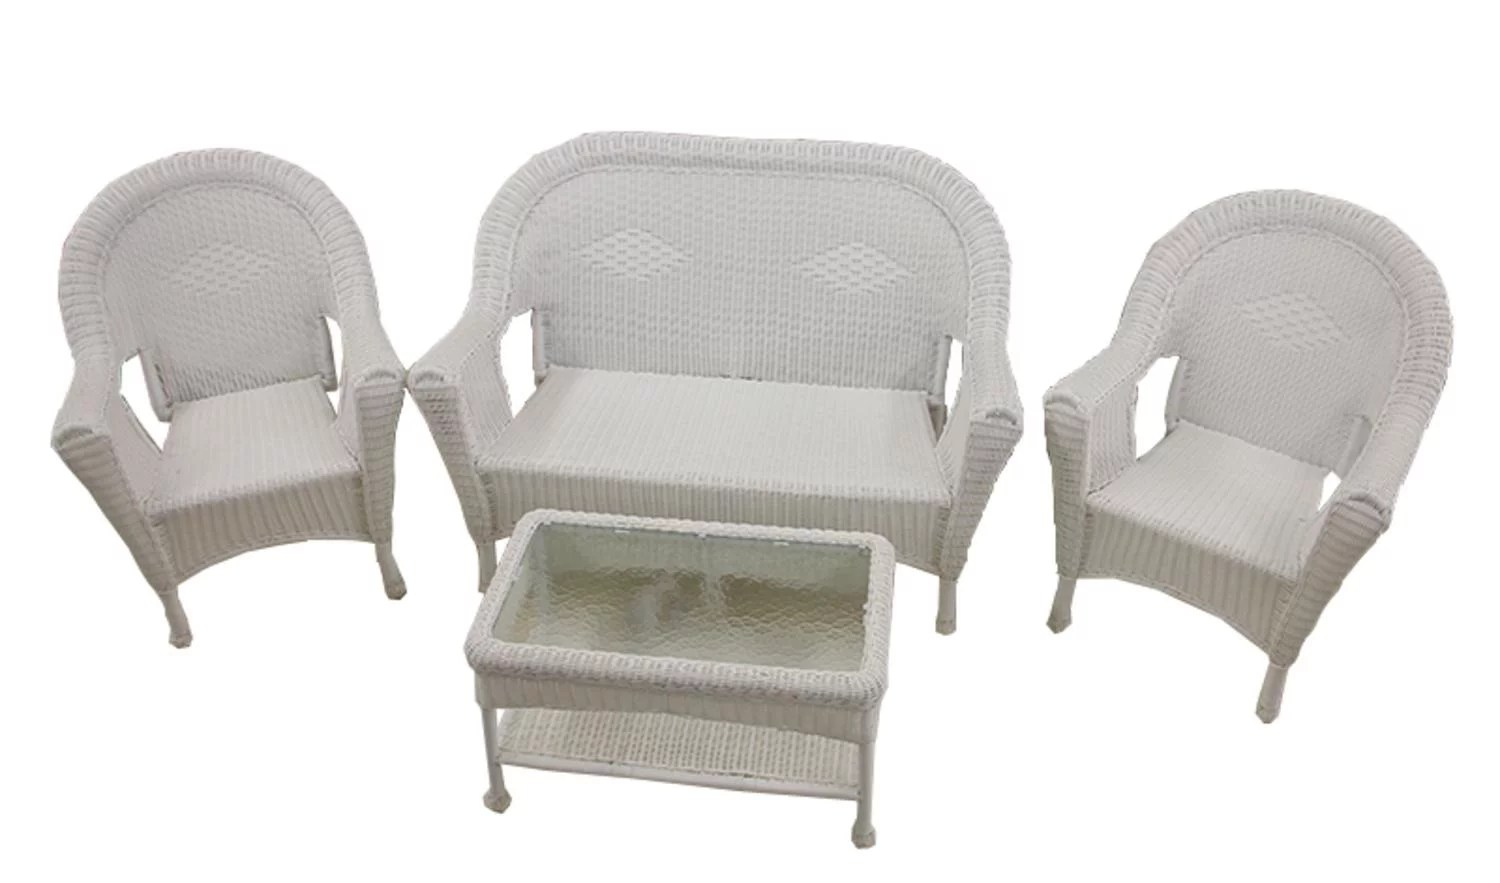 4 piece white resin wicker patio furniture set 2 chairs loveseat table